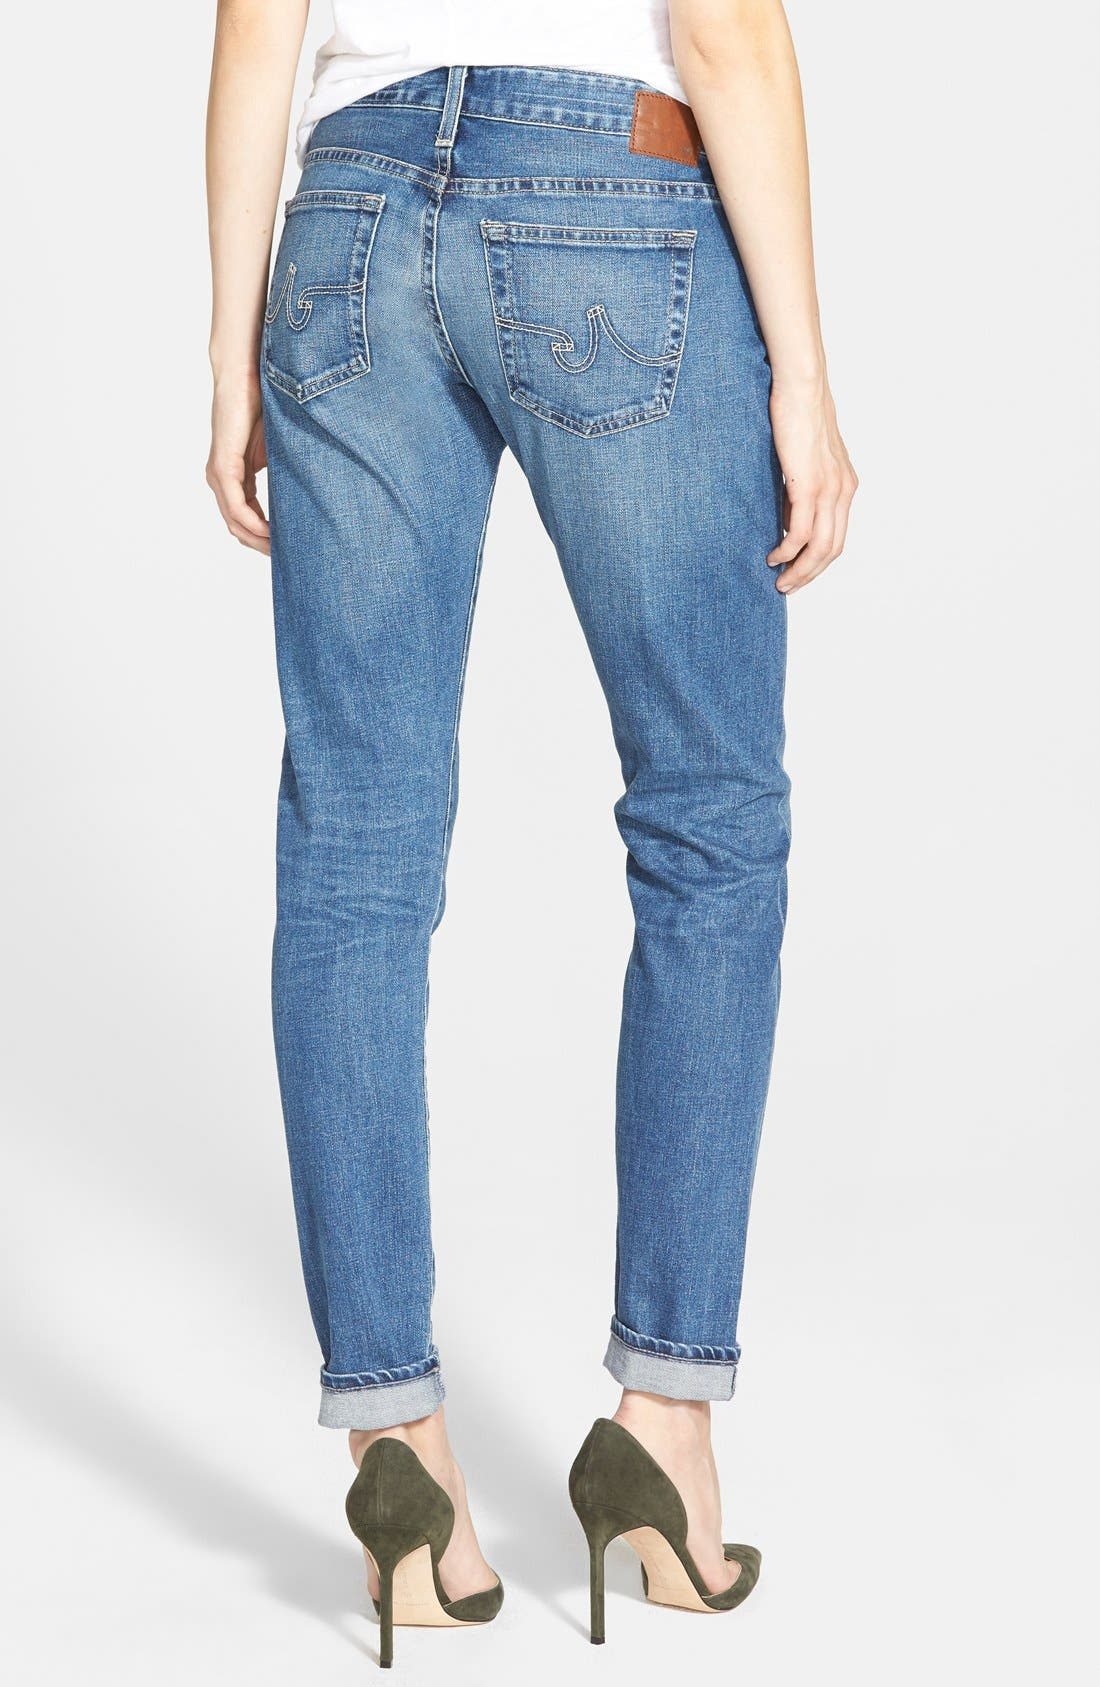 'The Nikki' Relaxed Skinny Jeans,                             Alternate thumbnail 2, color,                             167